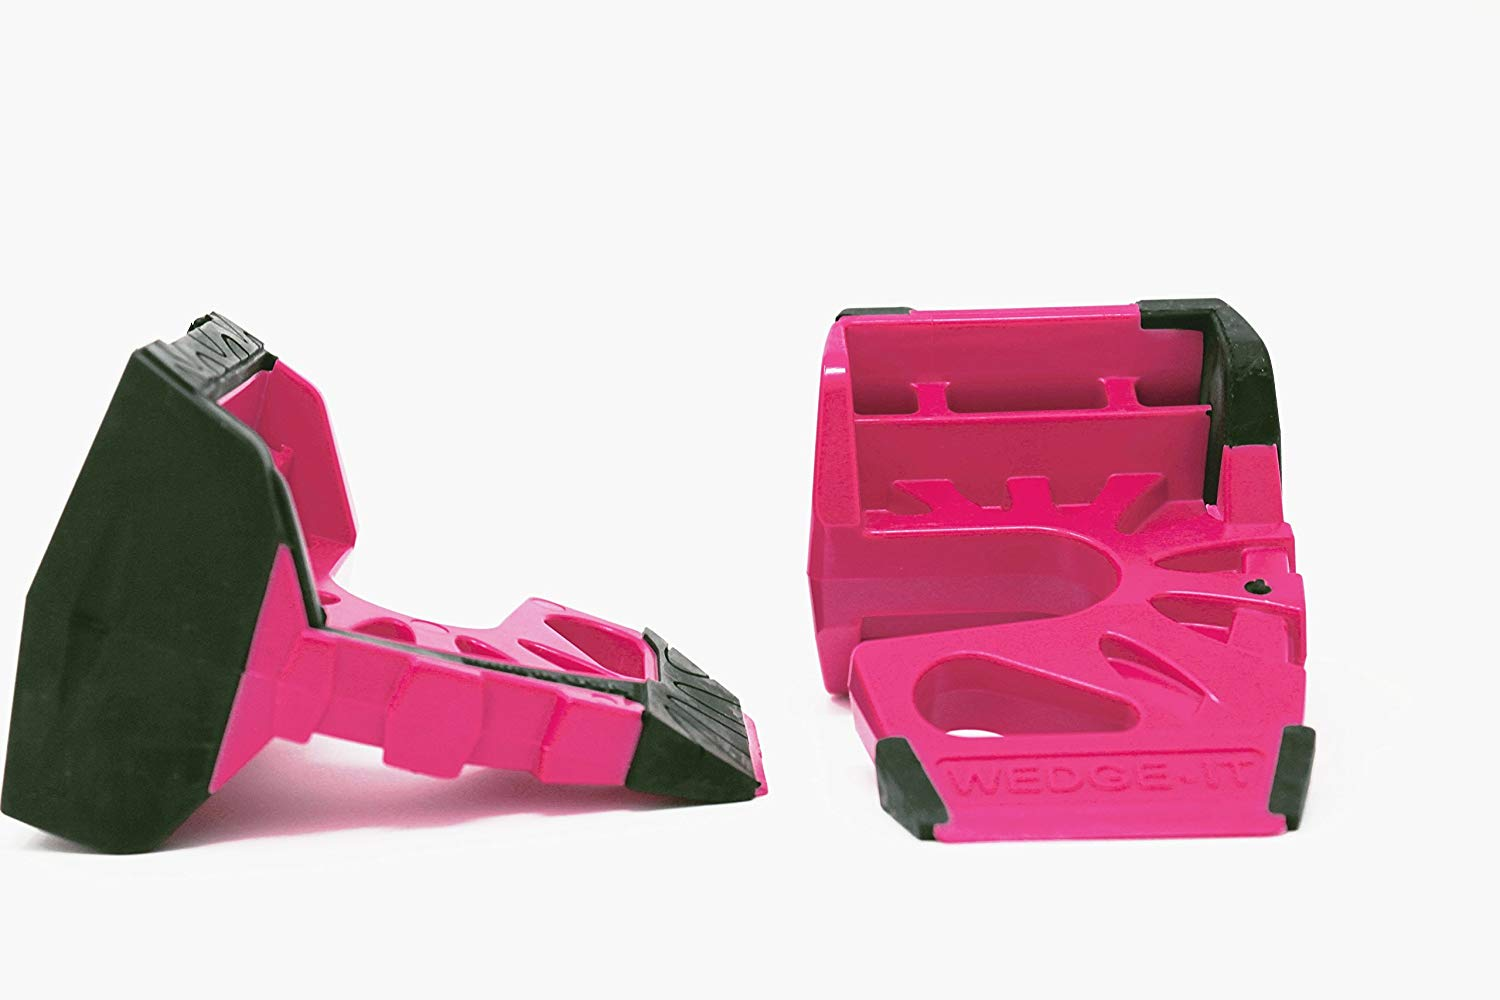 Wedge-It 3-in-1 Ultimate Door Stop Heavy Duty Lexan Plastic Rubber Shim - Pink x 2